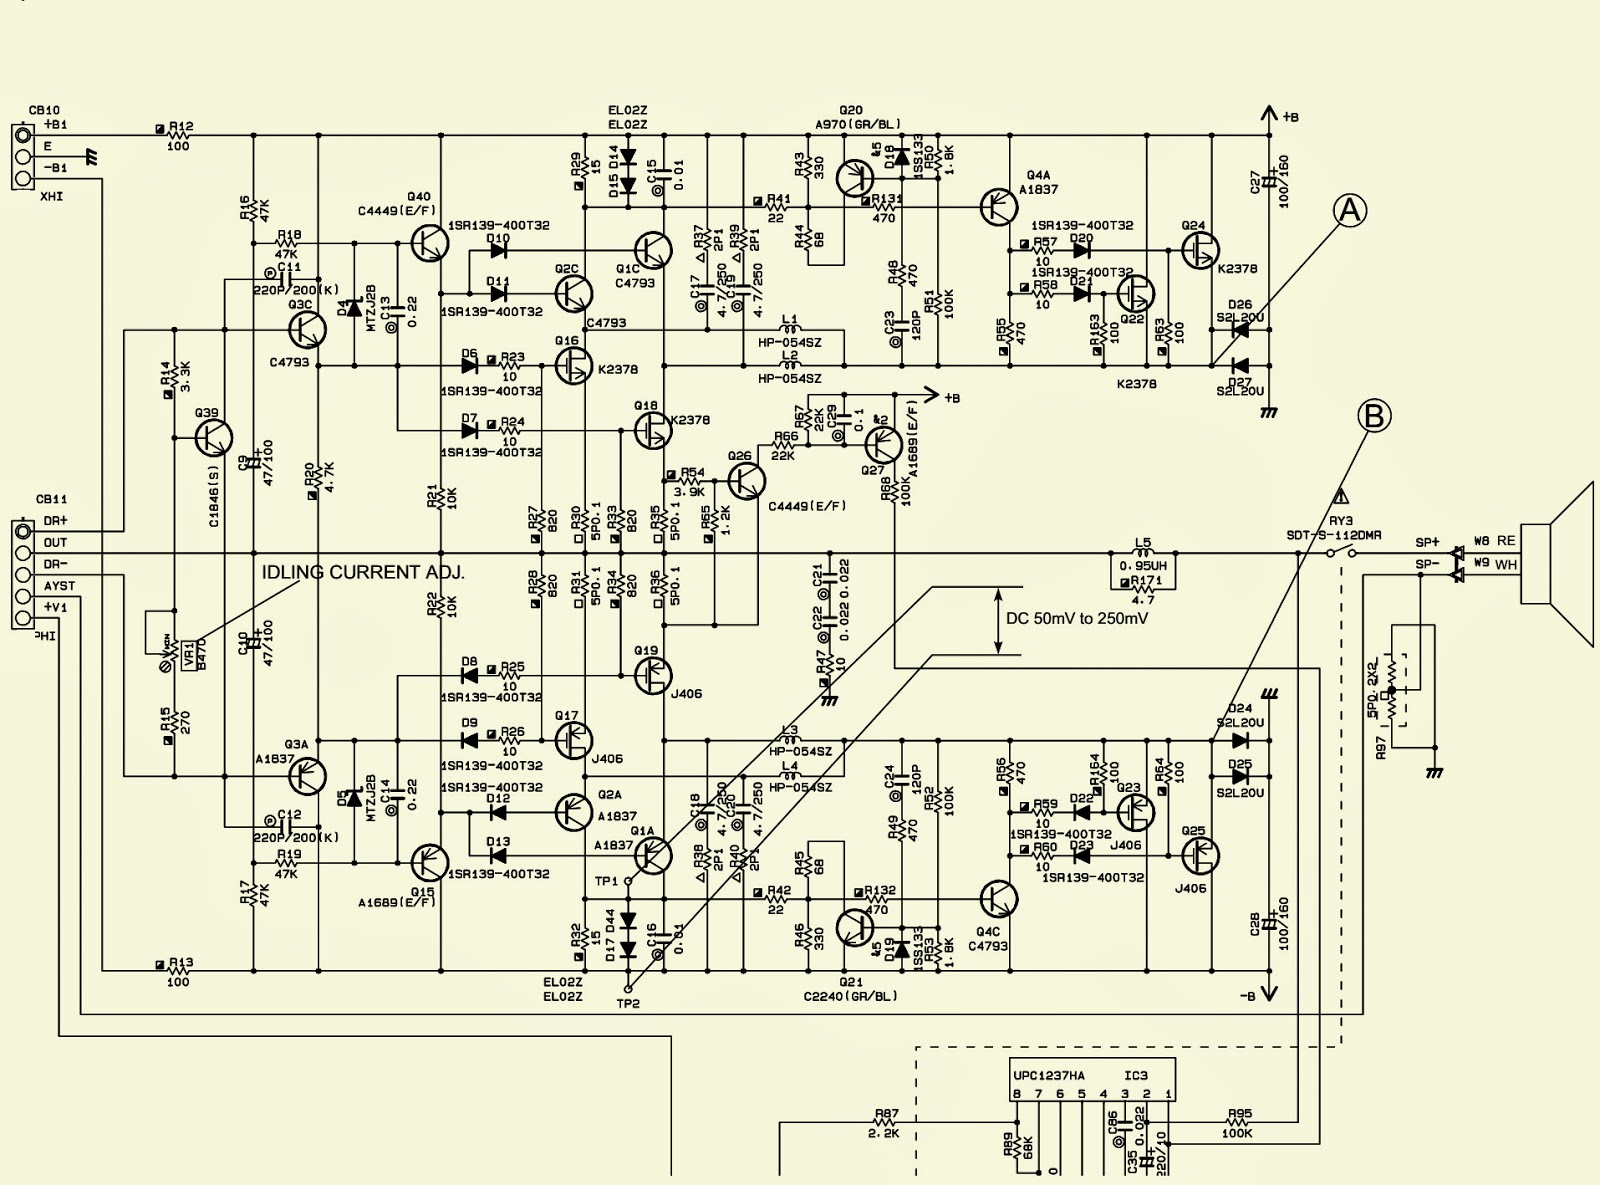 Yamaha Grizzly 660 Wiring Diagram Will Be A Thing Atv Klipsch Subwoofer Sub 10 Schematic Free Engine 2004 2003